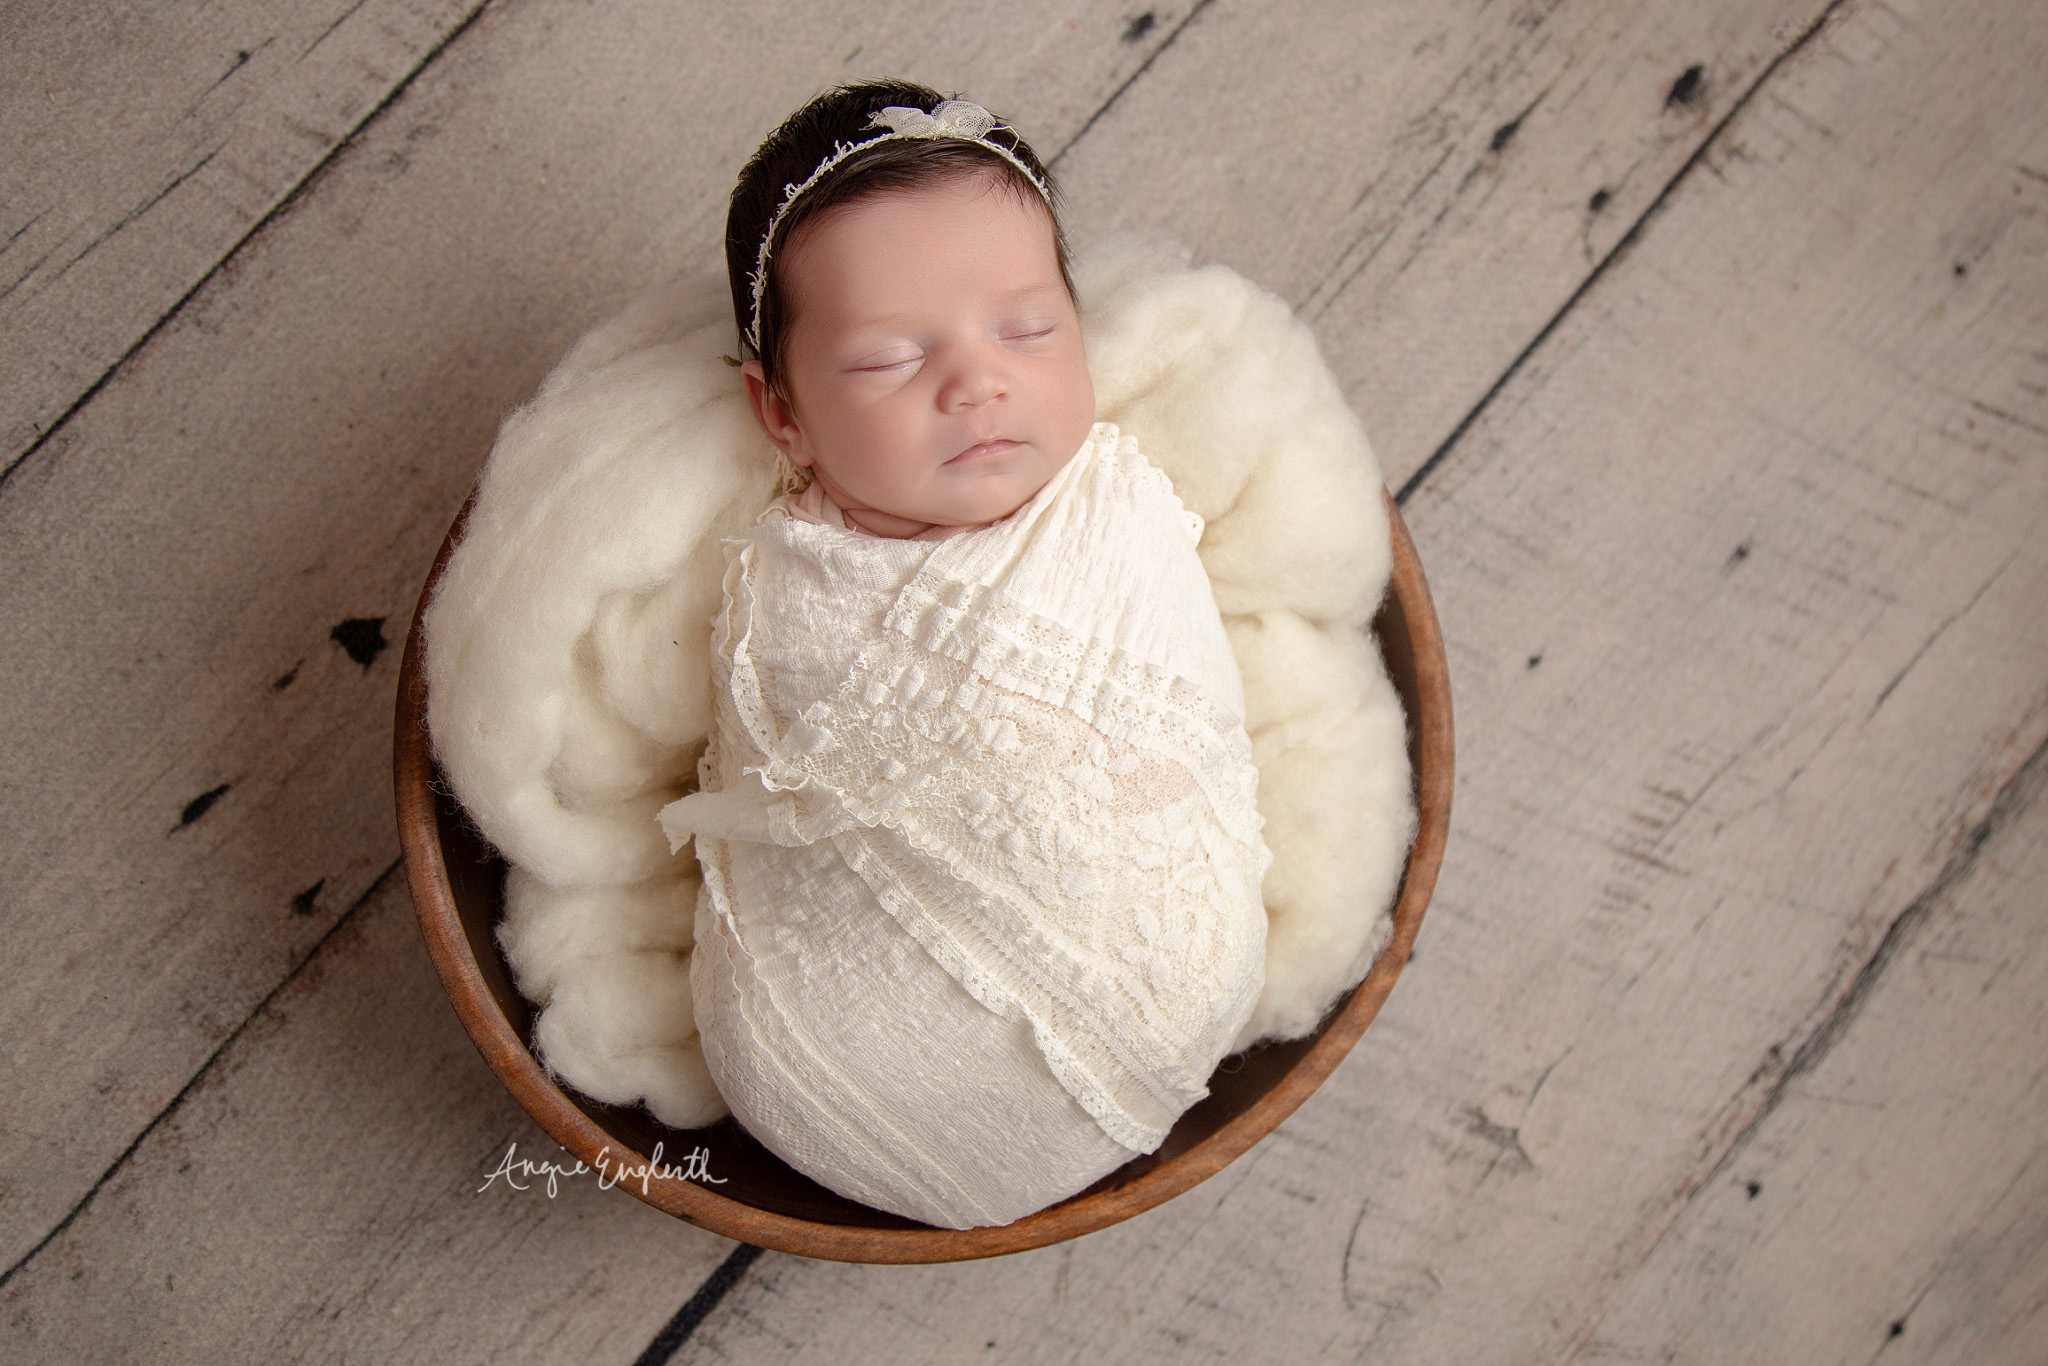 lancaster_newborn_and_maternity_photographer_angie_englerth_central_pa_b014.jpg